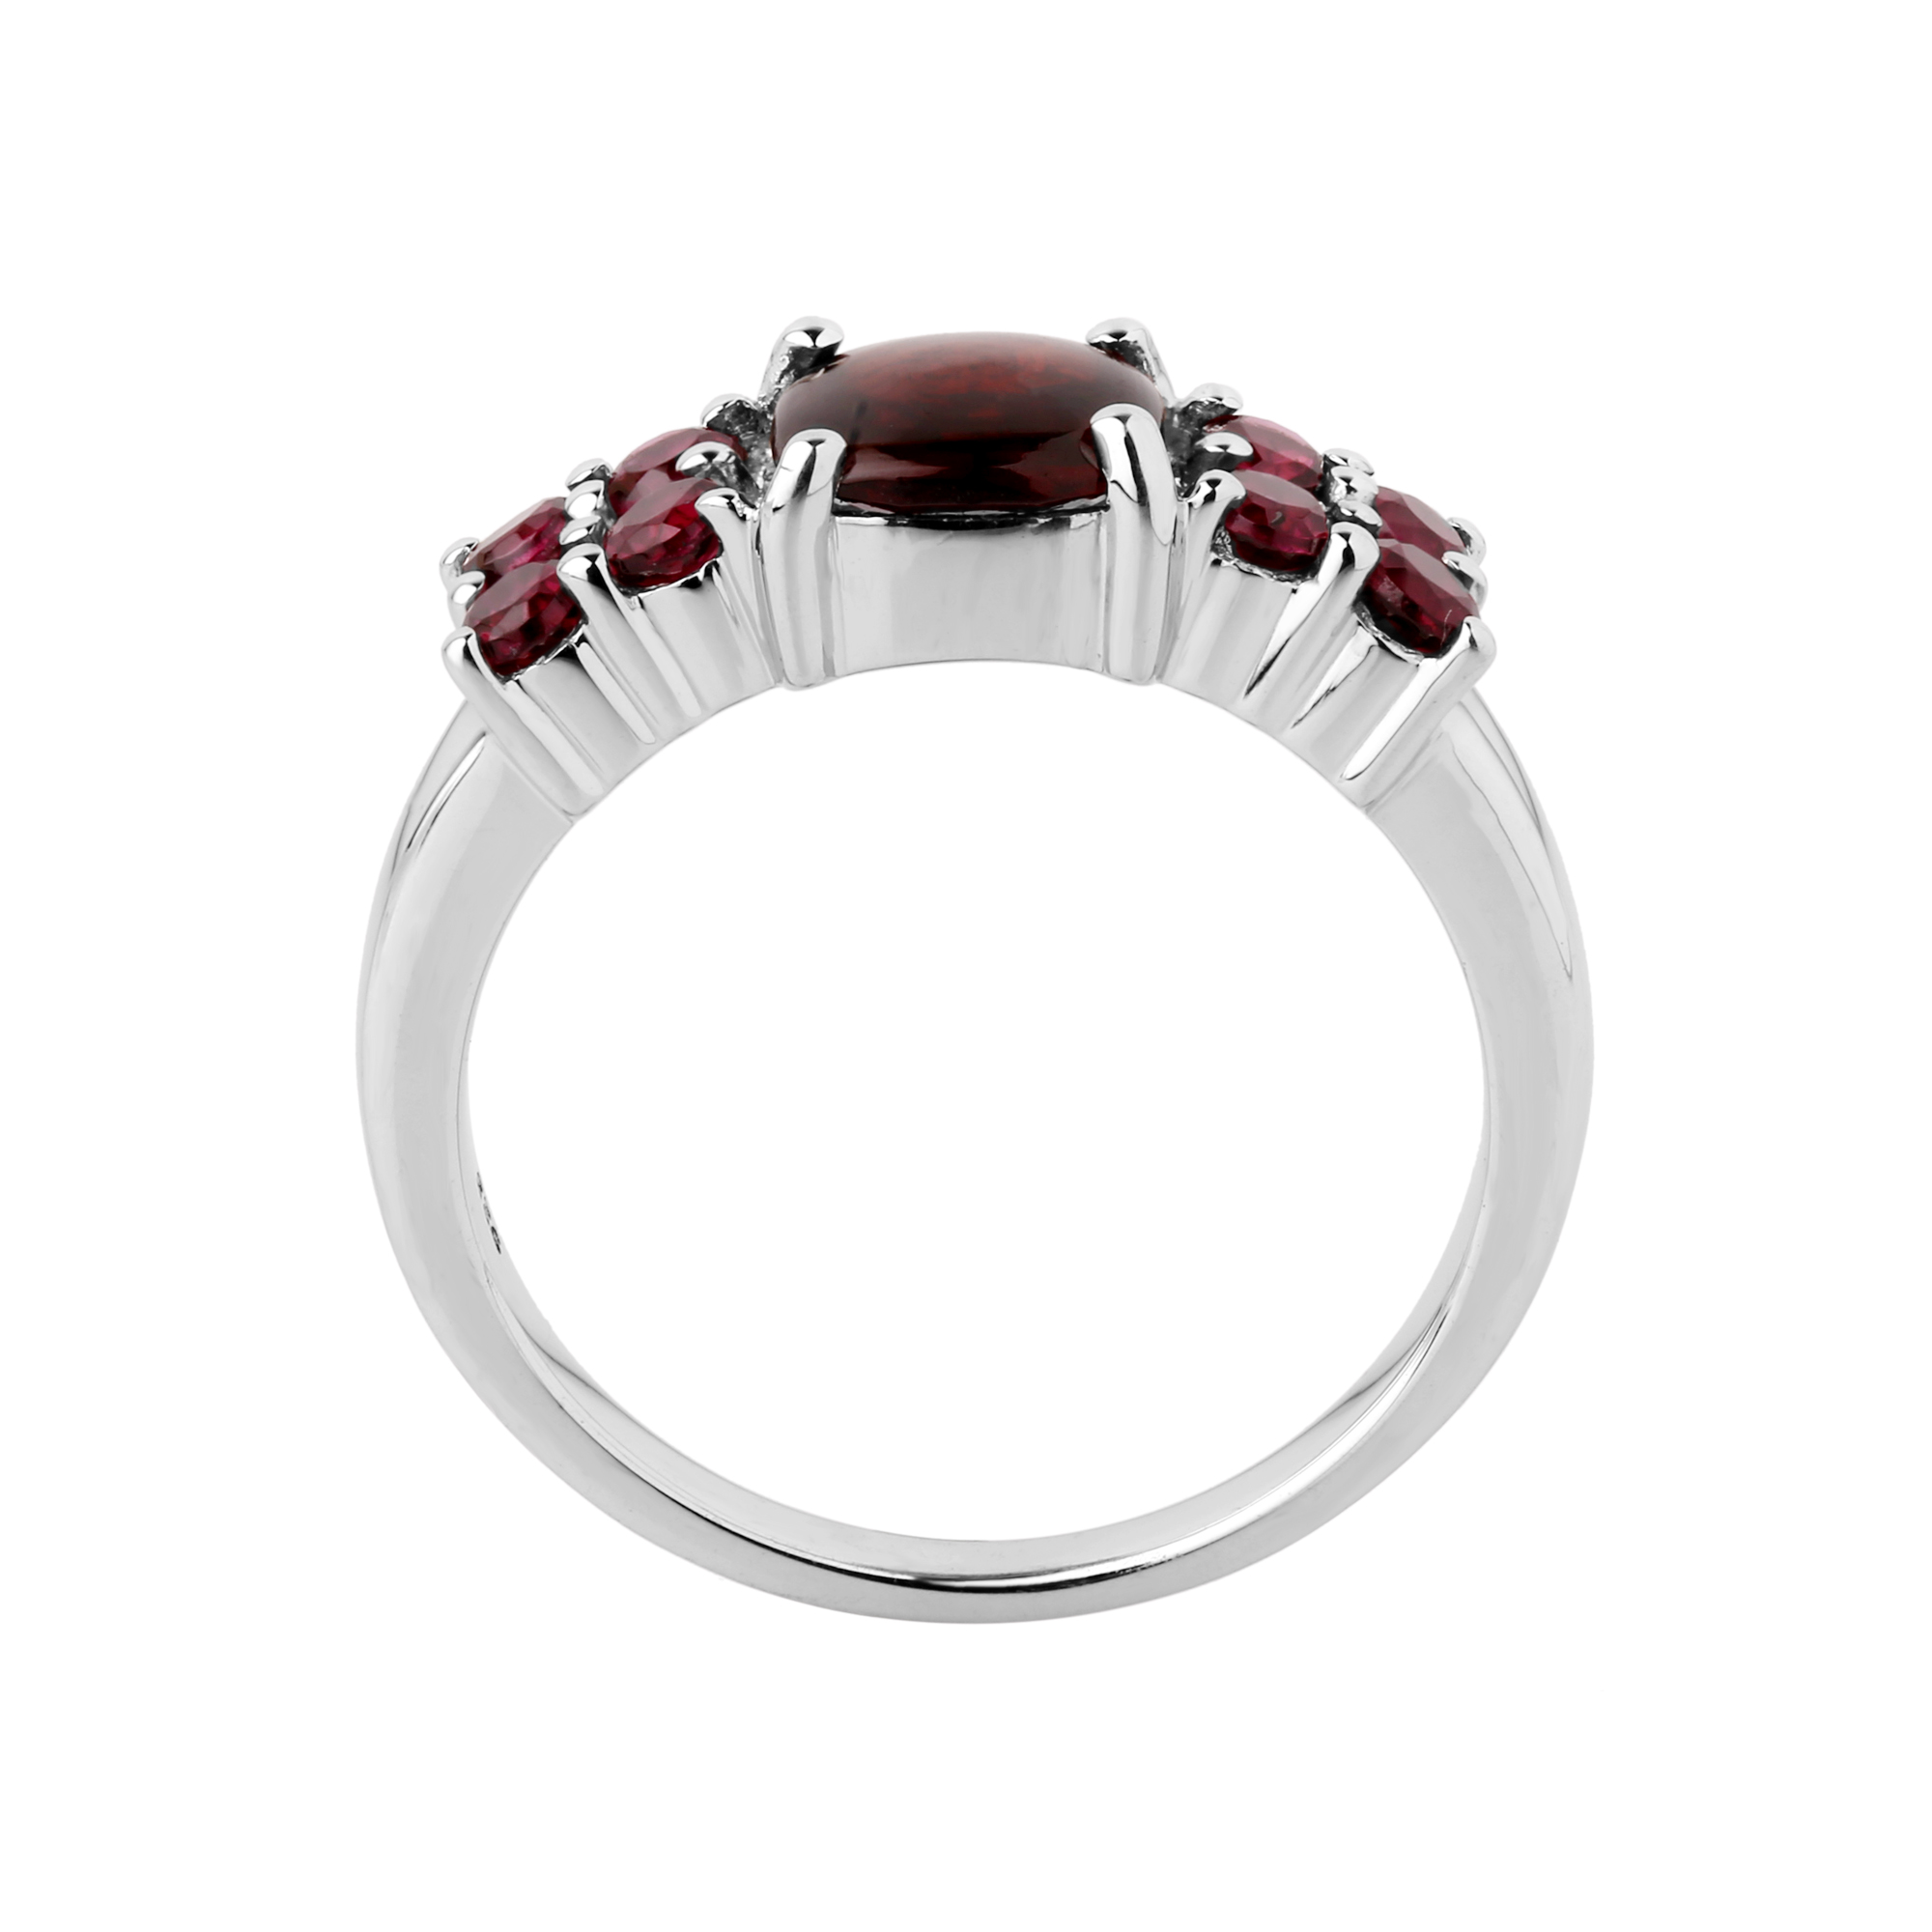 Garnet cushion solitaire ring